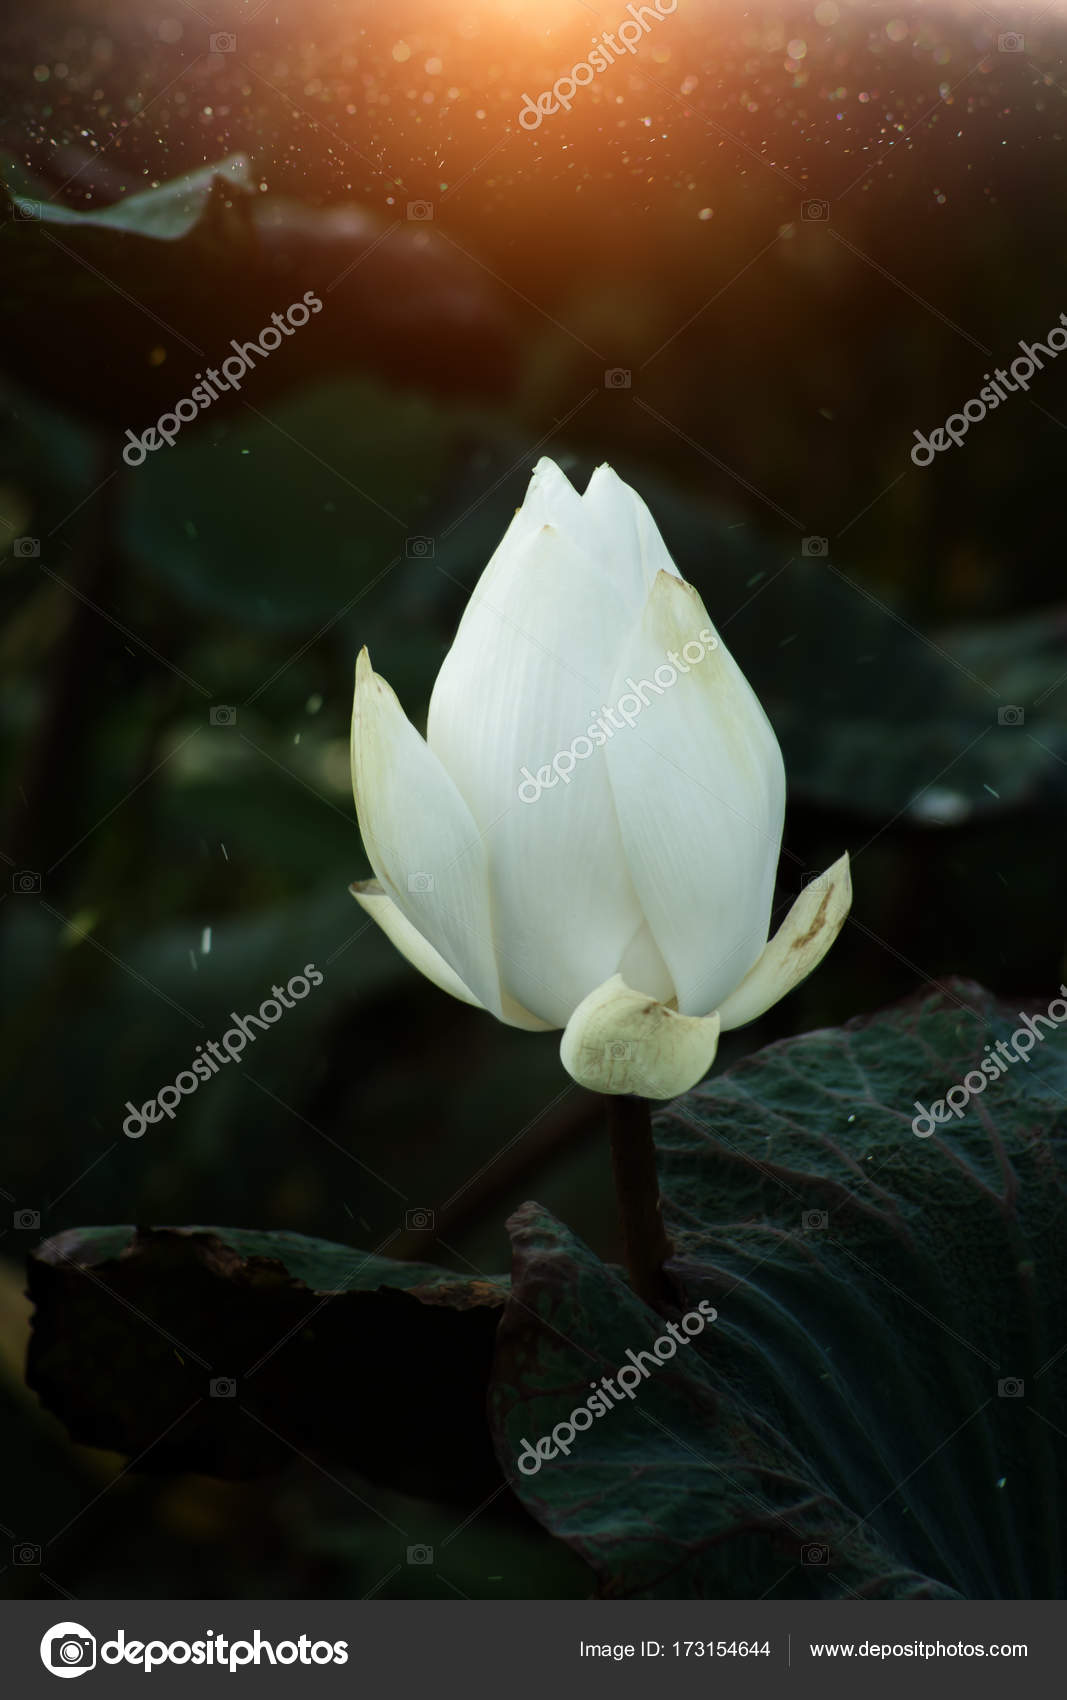 Beautiful white lotus flower stock photo noppharatth 173154644 beautiful white lotus flower and leaf in the dark background with floating dust photo by noppharatth izmirmasajfo